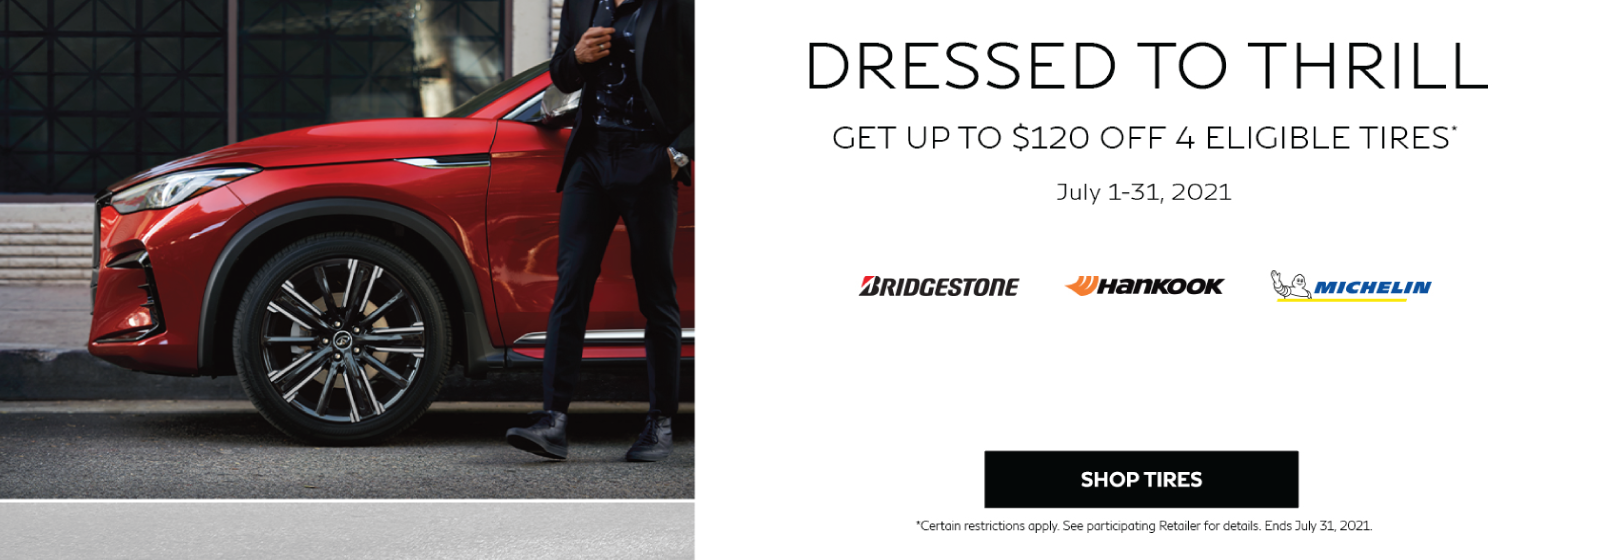 Dressed to thrill! Get up to $120 off 4 eligible tires* July 1-31, 2021. Click to shop tires.